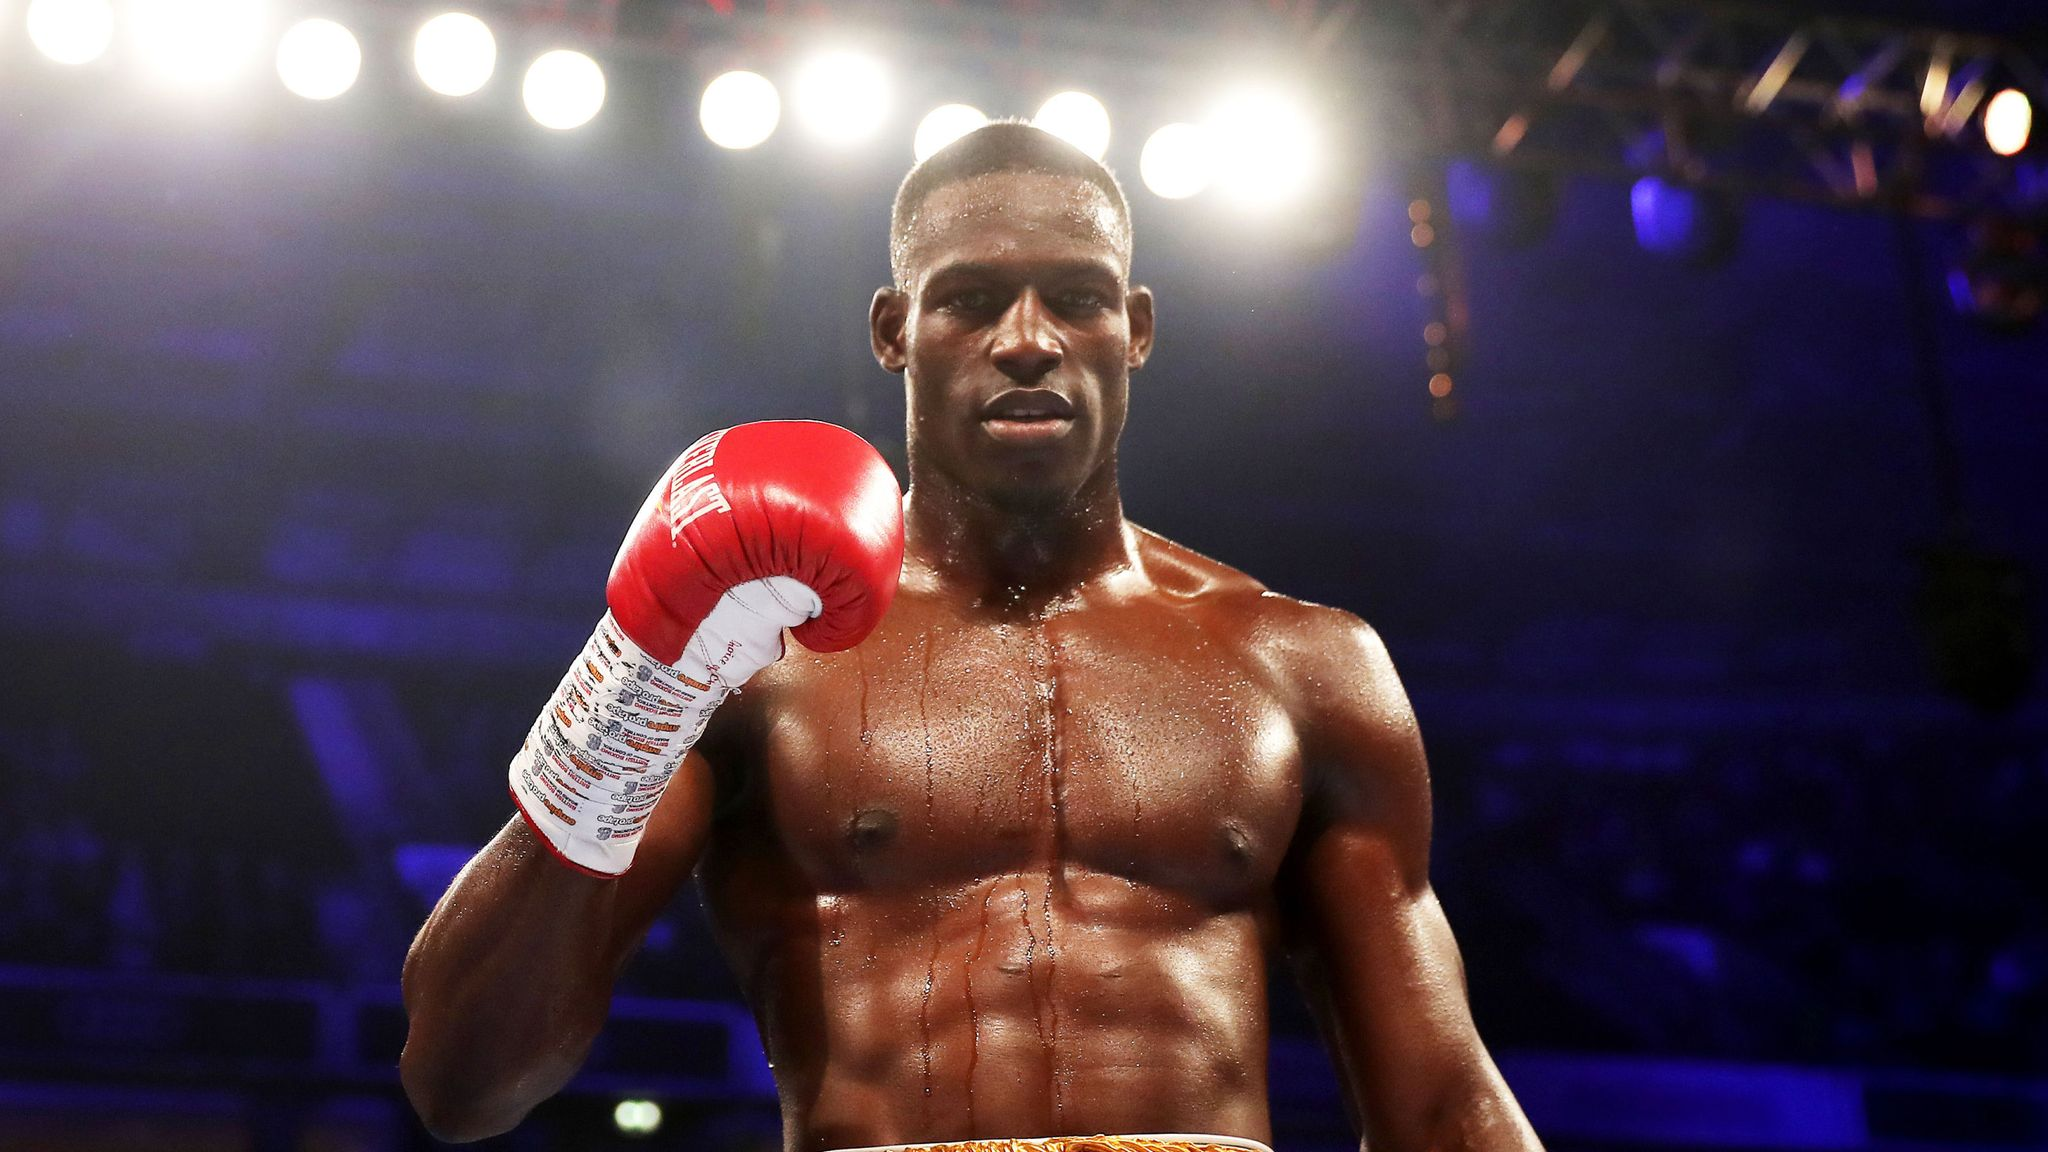 Boxer, Richard Riakporhe helps us to inspire young people